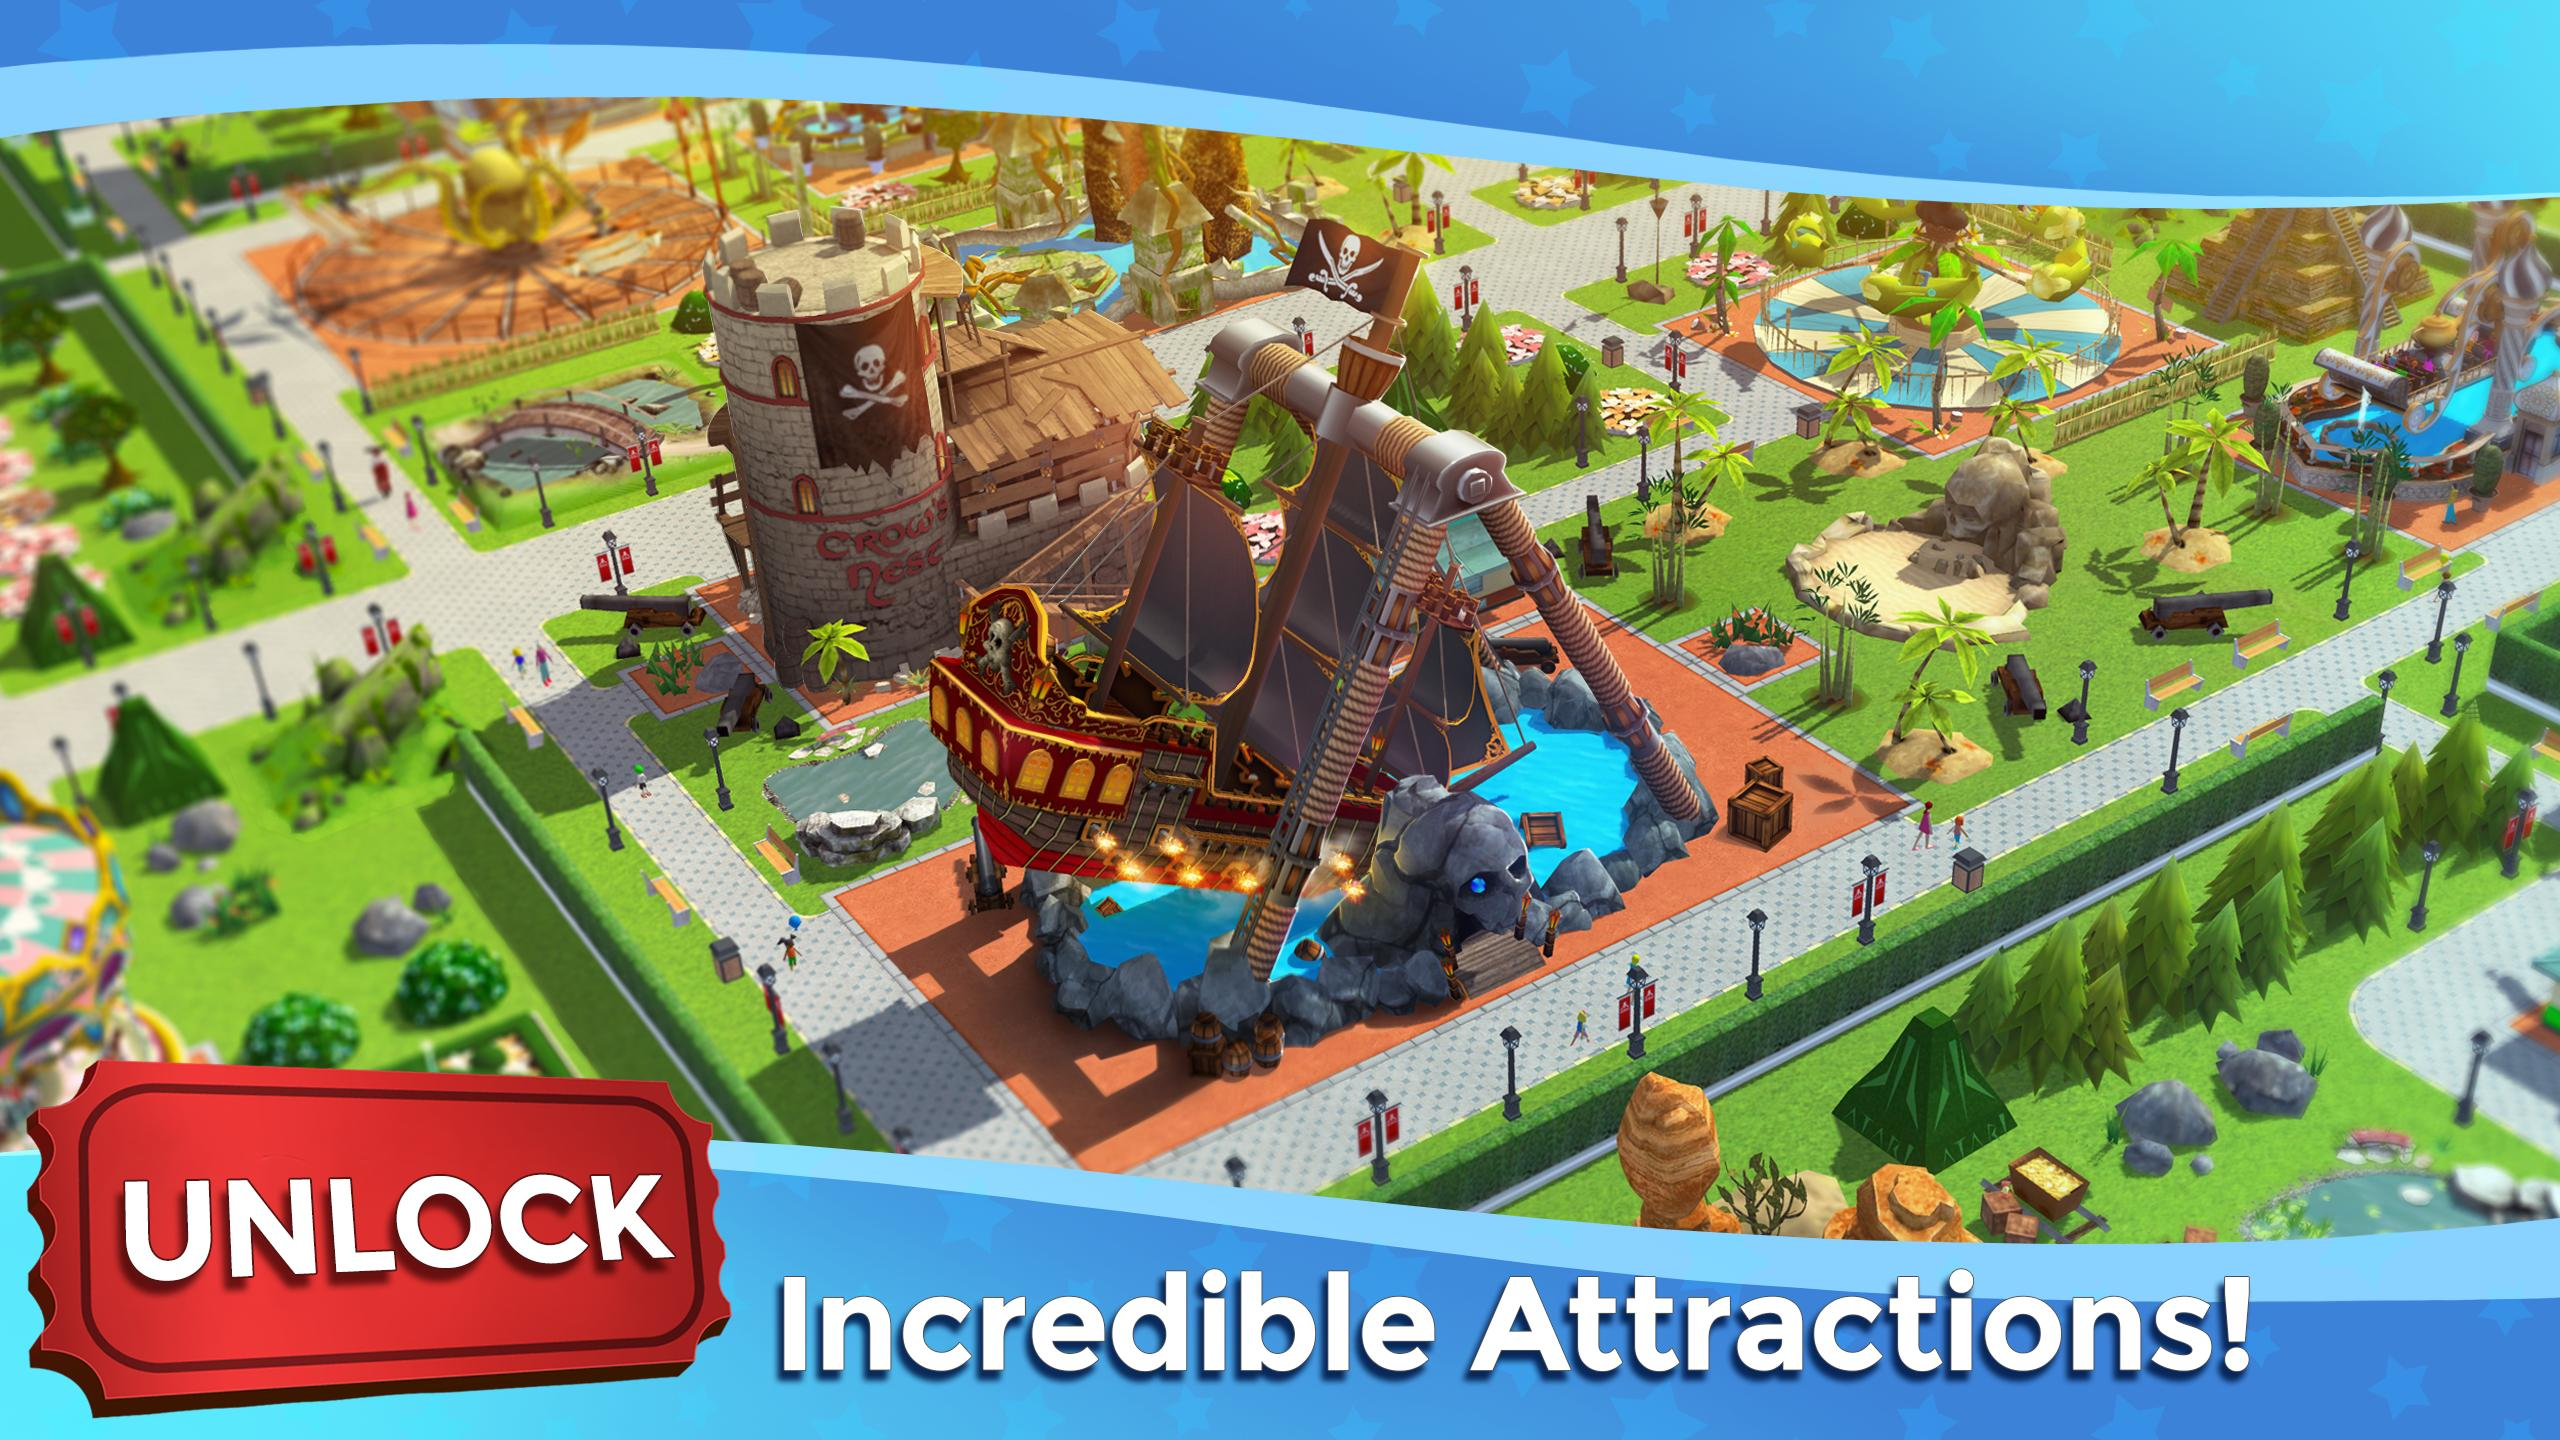 RollerCoaster Tycoon Touch - Build your Theme Park 3.5.0 Screenshot 19